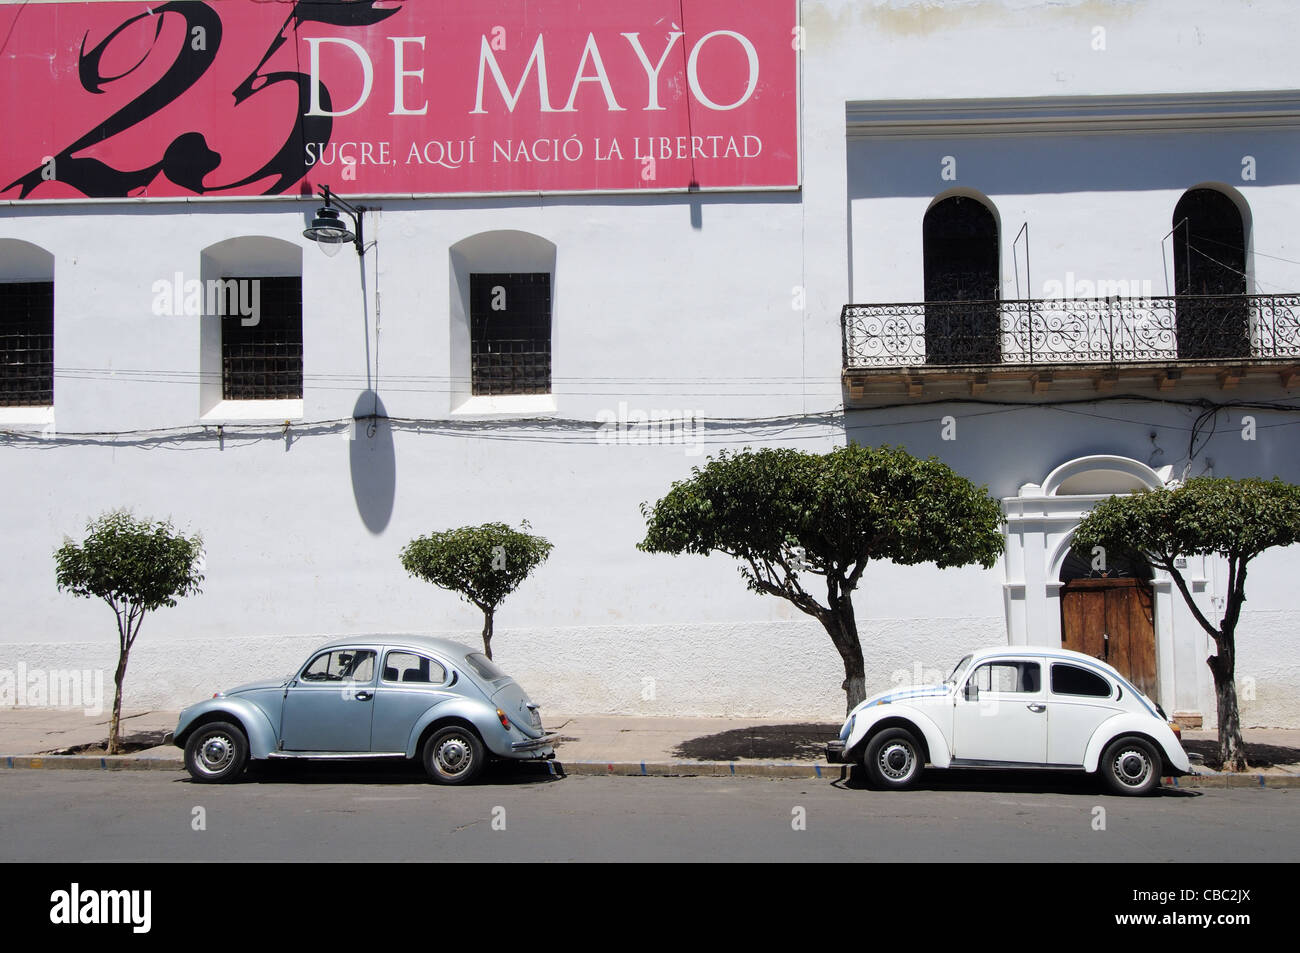 Two Vw Beetles Parked In A Street In Sucre Bolivia Cbc Jx